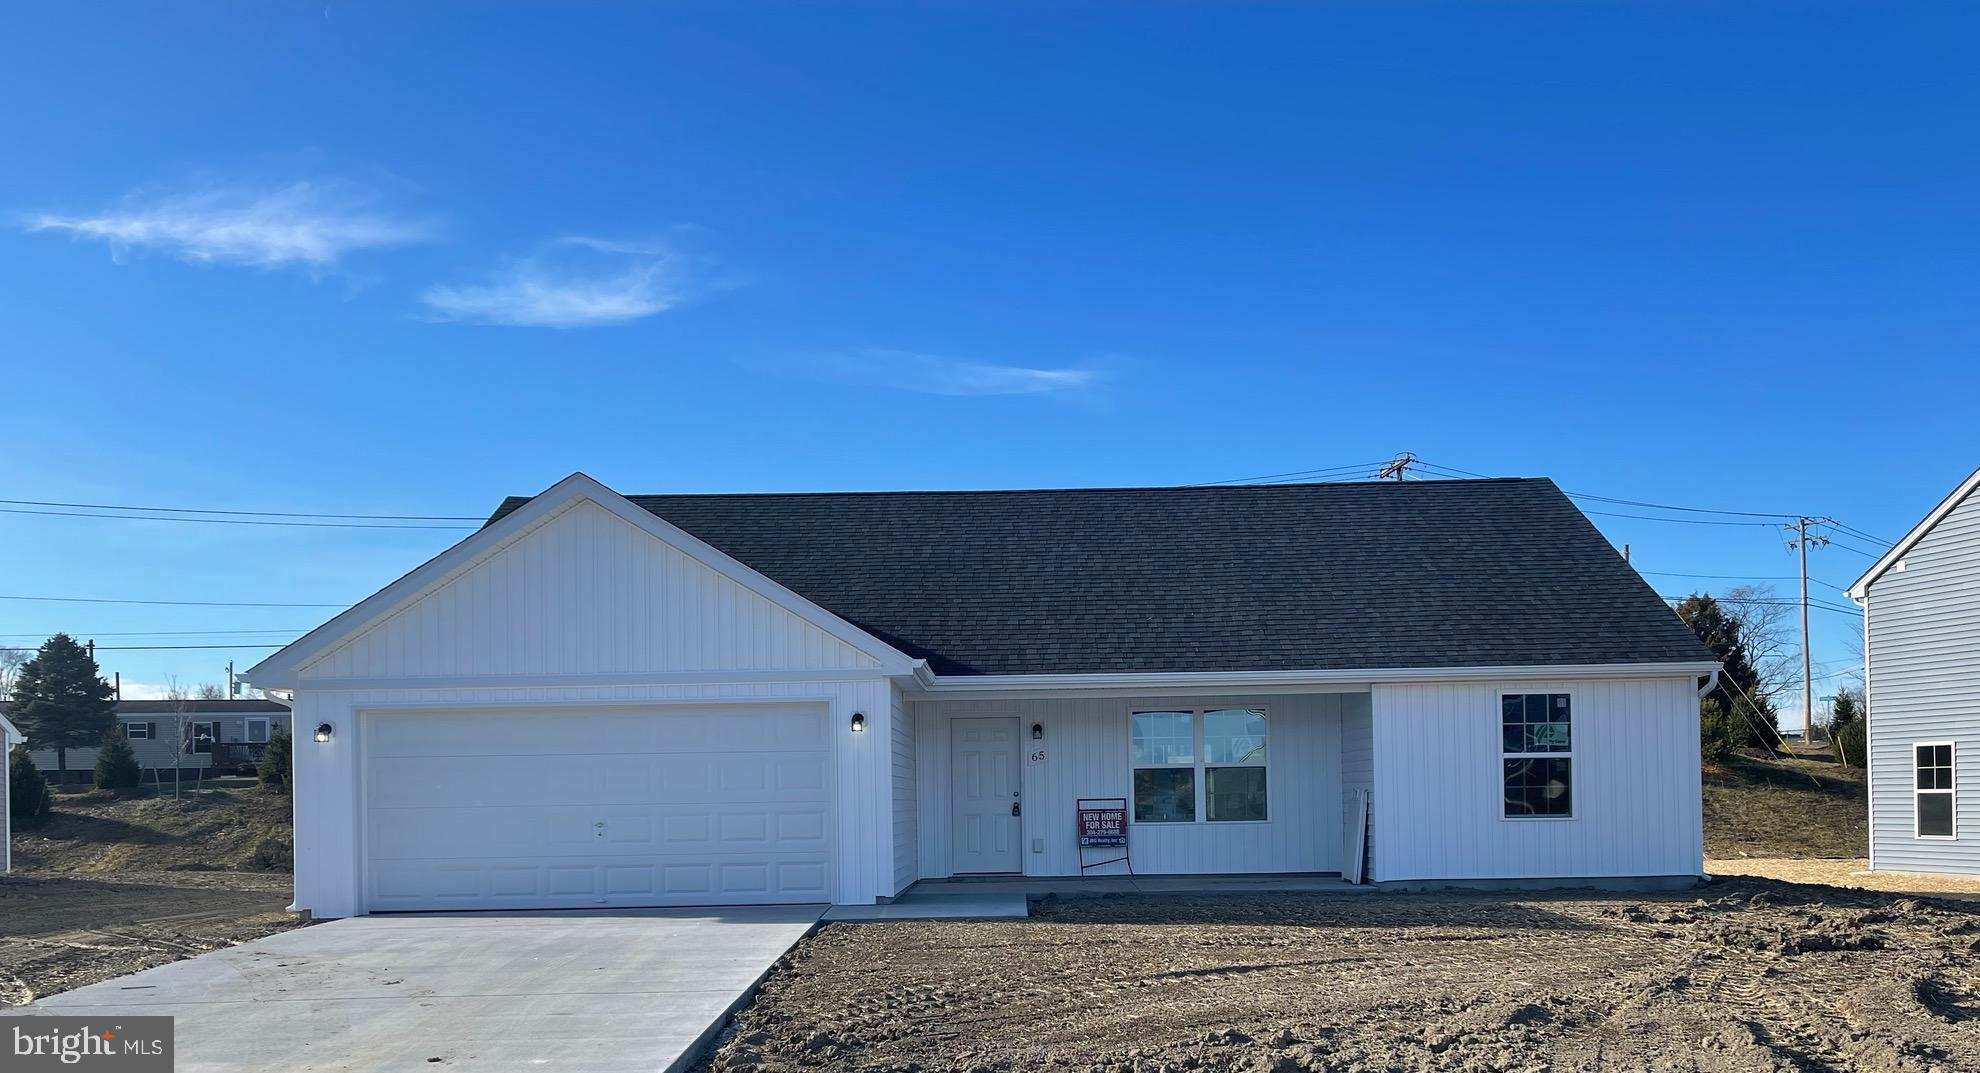 Construction to start Soon..Three bedrooms,two baths,two car garage,concrete patio,front porch,cathe